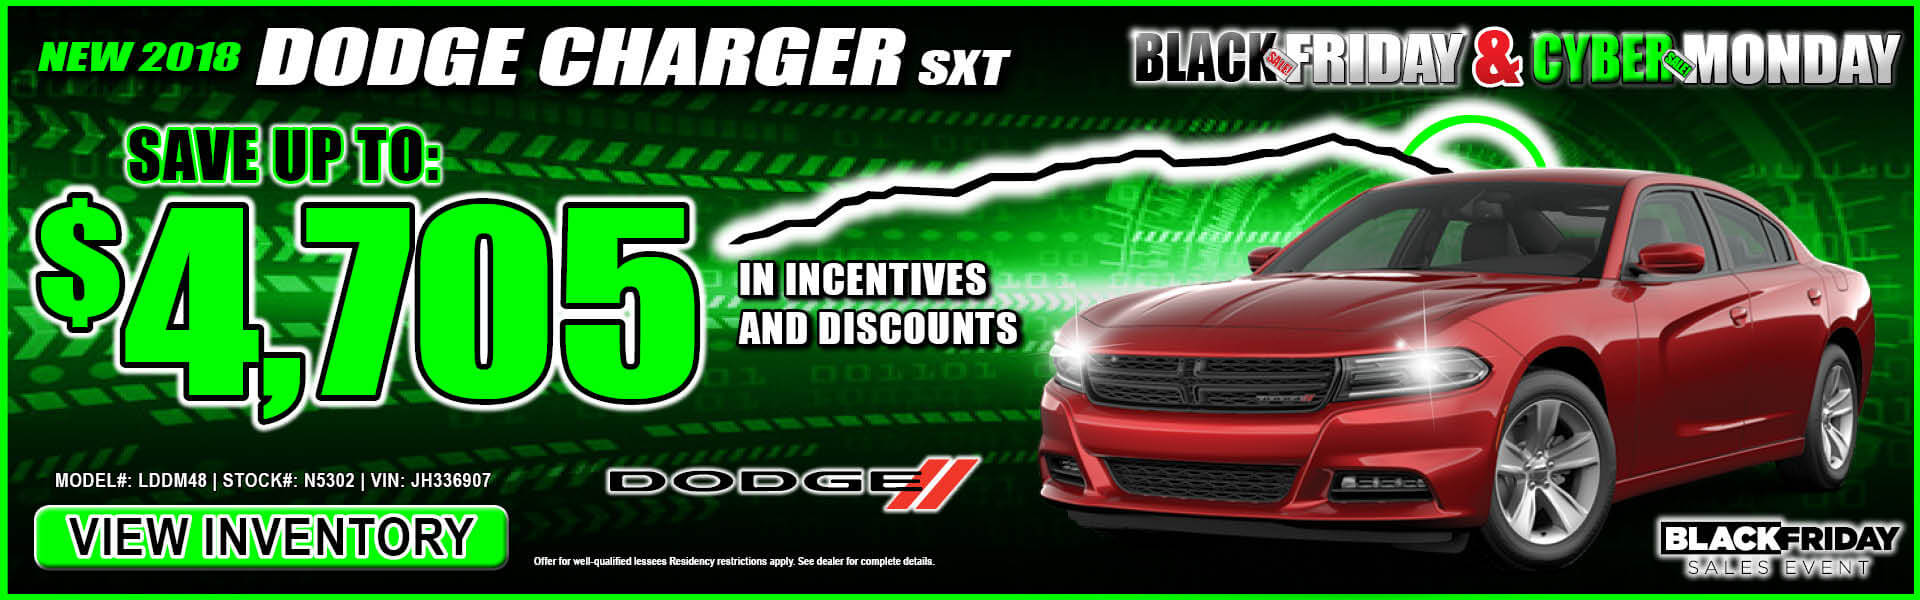 Dodge Charger $4,705 Incentives